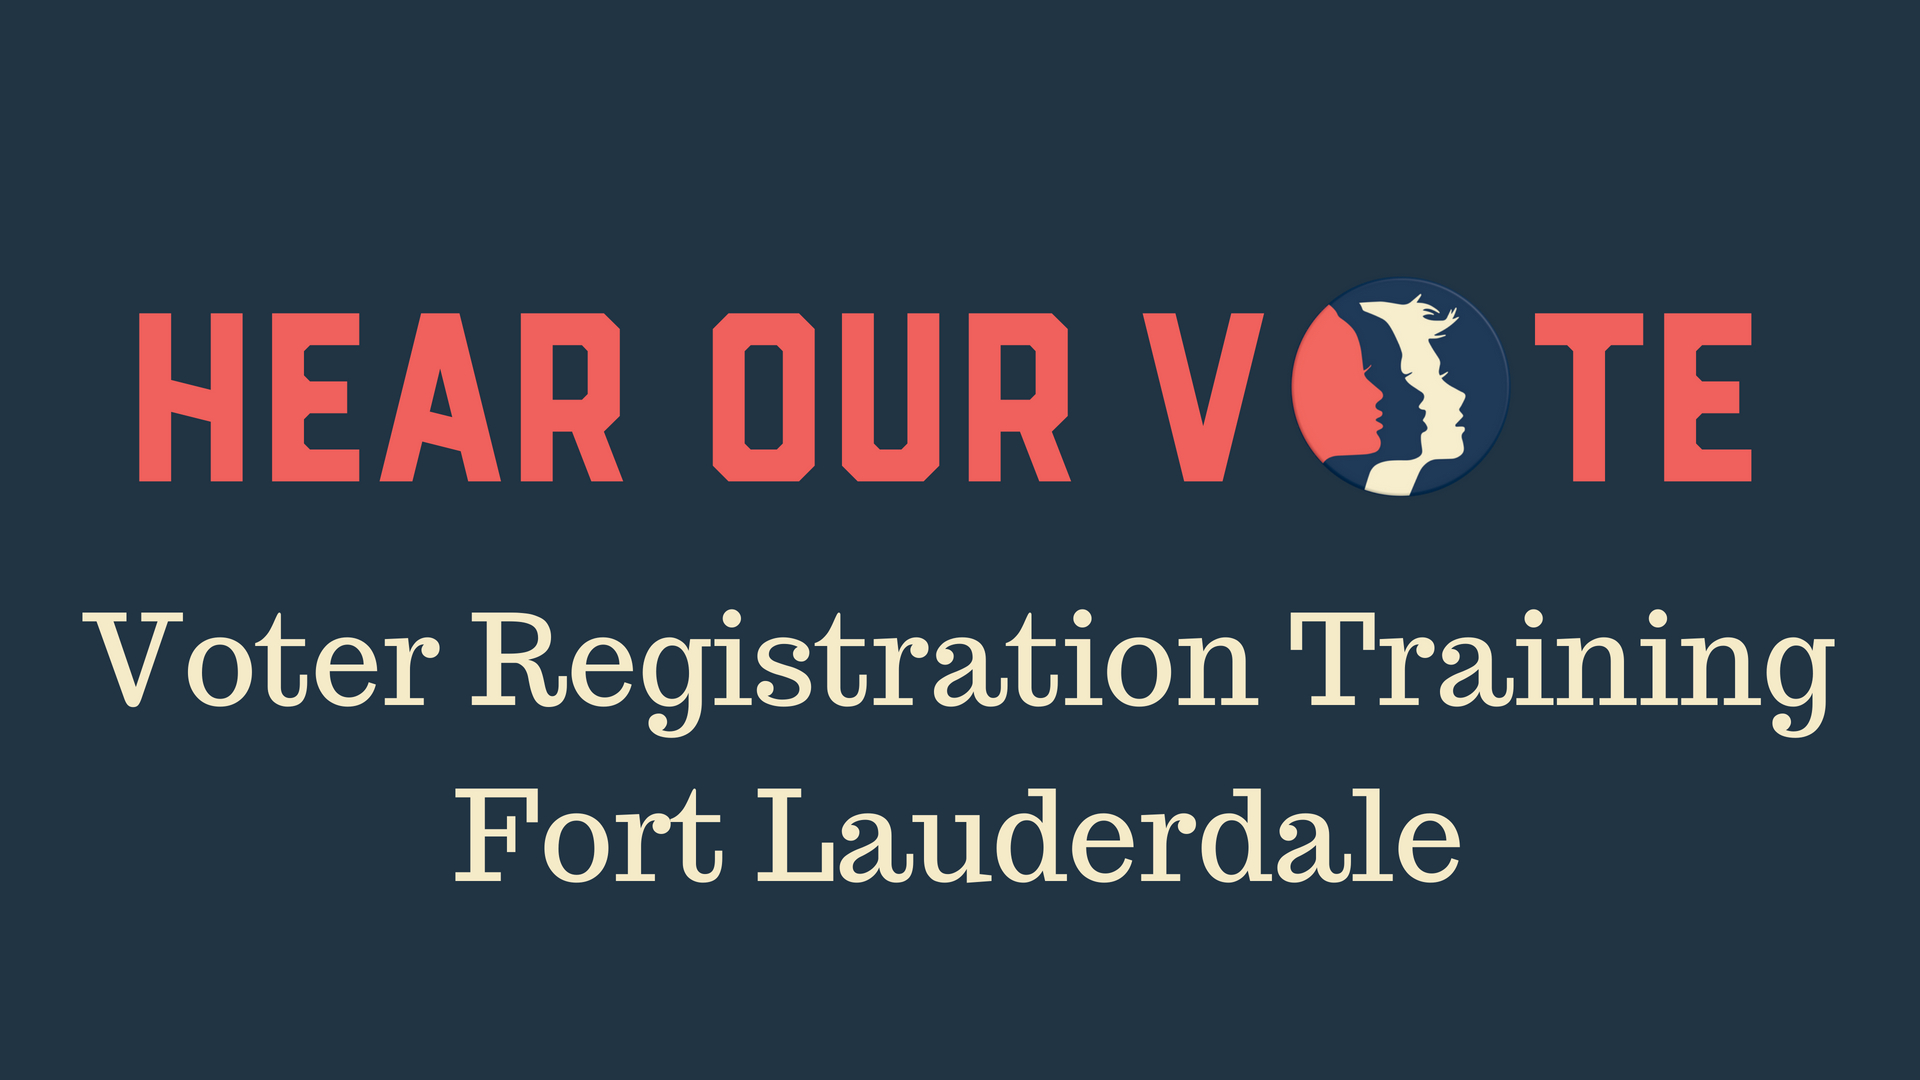 5-19-18: Voter Registration Training Session - On Saturday, May 19th, Women's March Broward will host a Voter Registration Training Session. Votes can and do change history. Voting builds a stronger democracy by providing people a voice, and giving people the ability to vote can empower them to make an impact on current legislation and policy. With this training you can join us at Voter Registrations Drives throughout Broward County as we work through November to turn Florida BLUE. Please join us to learn what you can do to help. We hope to see you there!